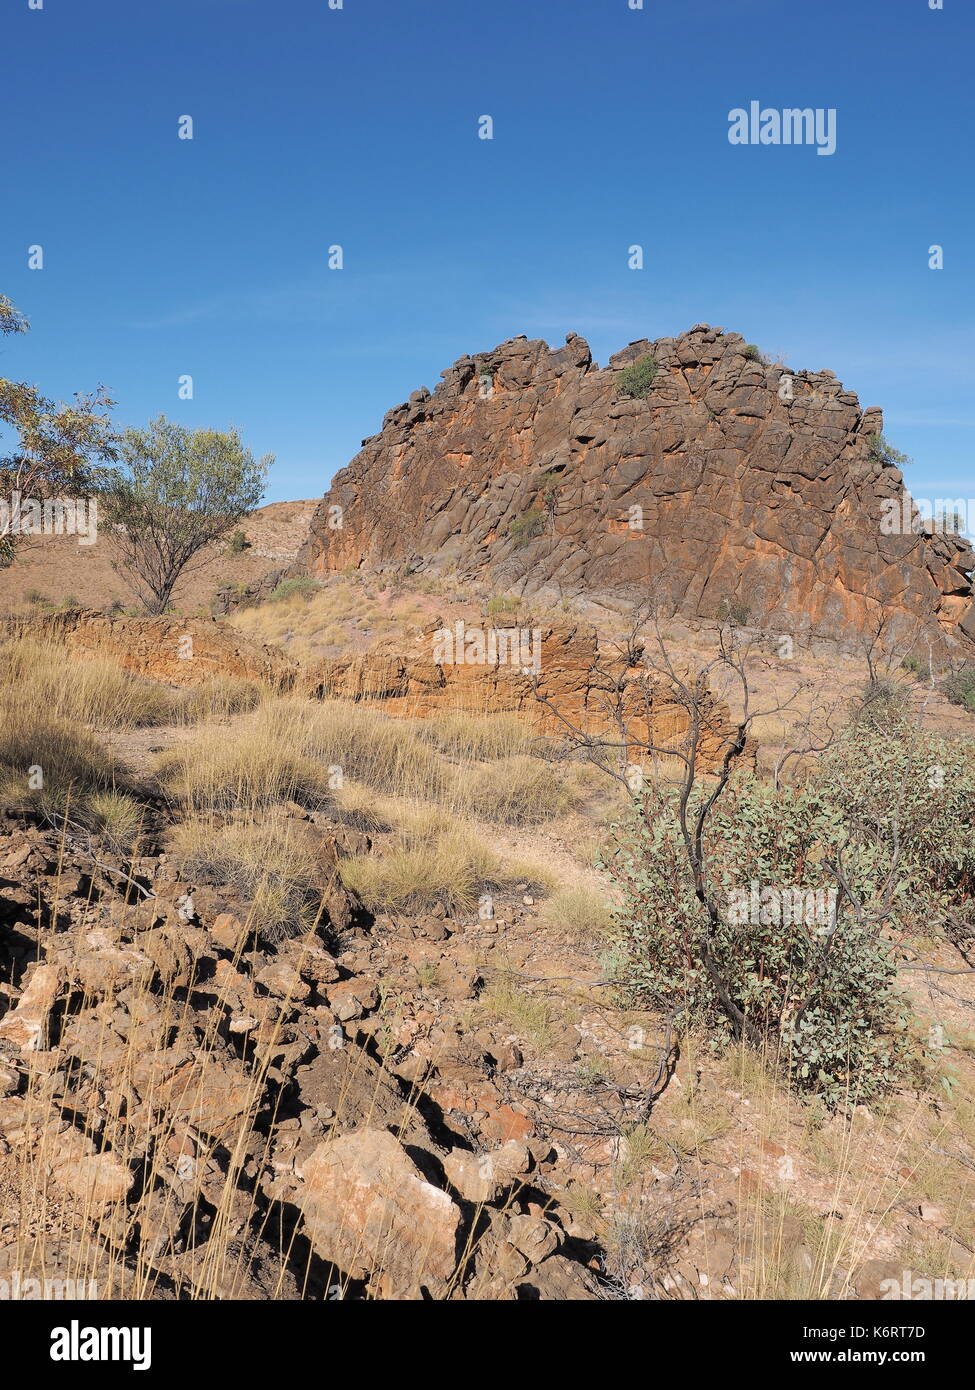 The Corroborree Rock near the Ross Highway, east of Alice Springs, Northern Territory, Australia 2017 - Stock Image